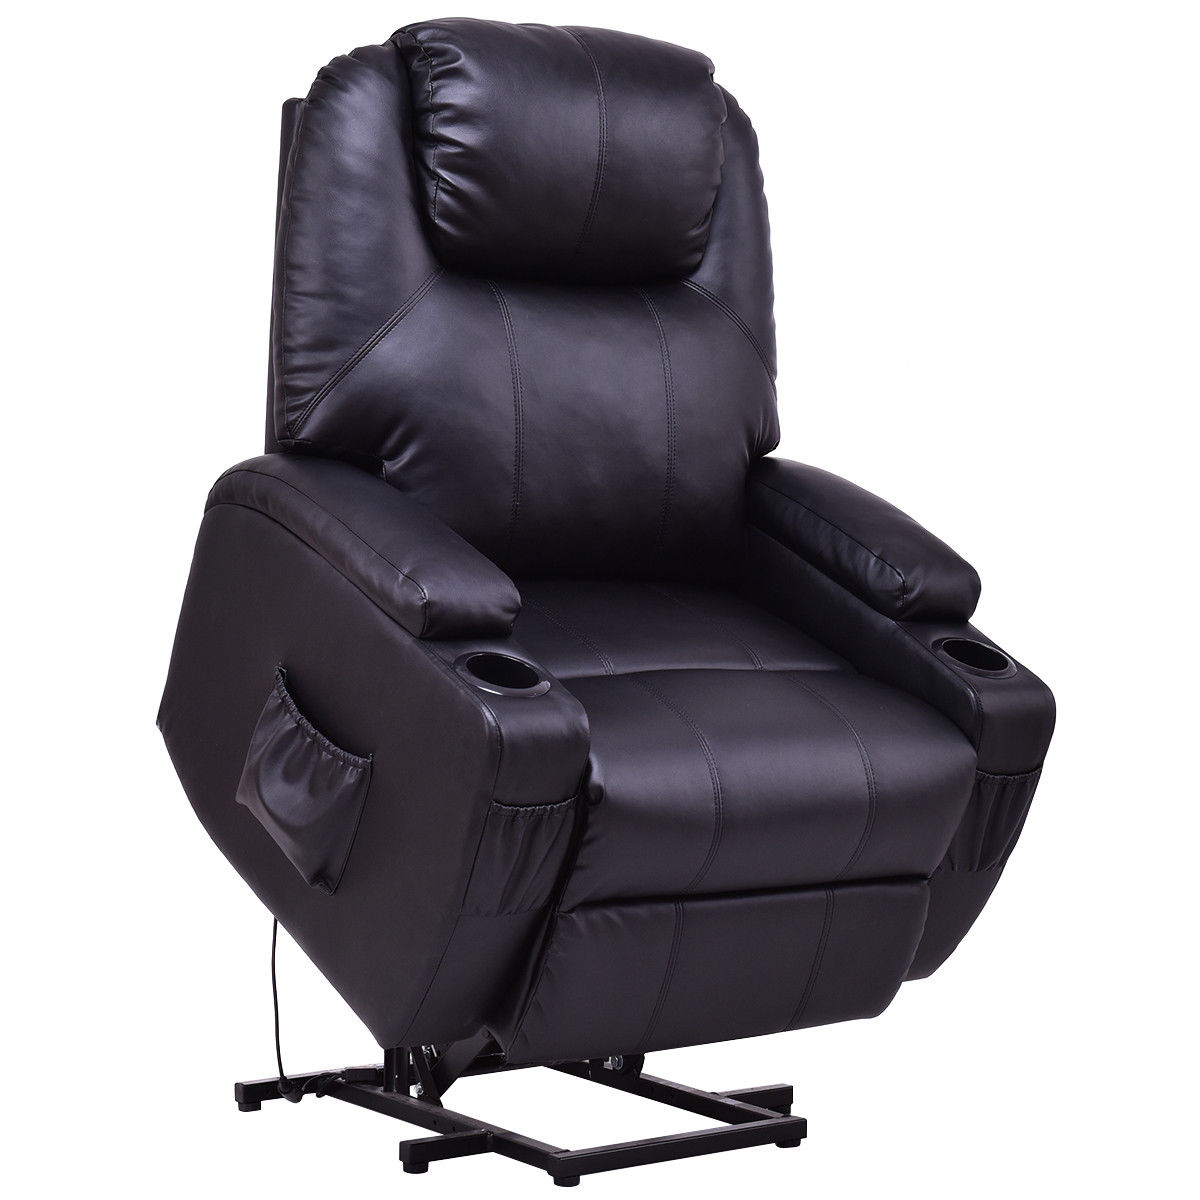 Costway Electric Power Lift Chair Recliner PU Leather Padded Seat w  Remote & Cup Holder by Costway